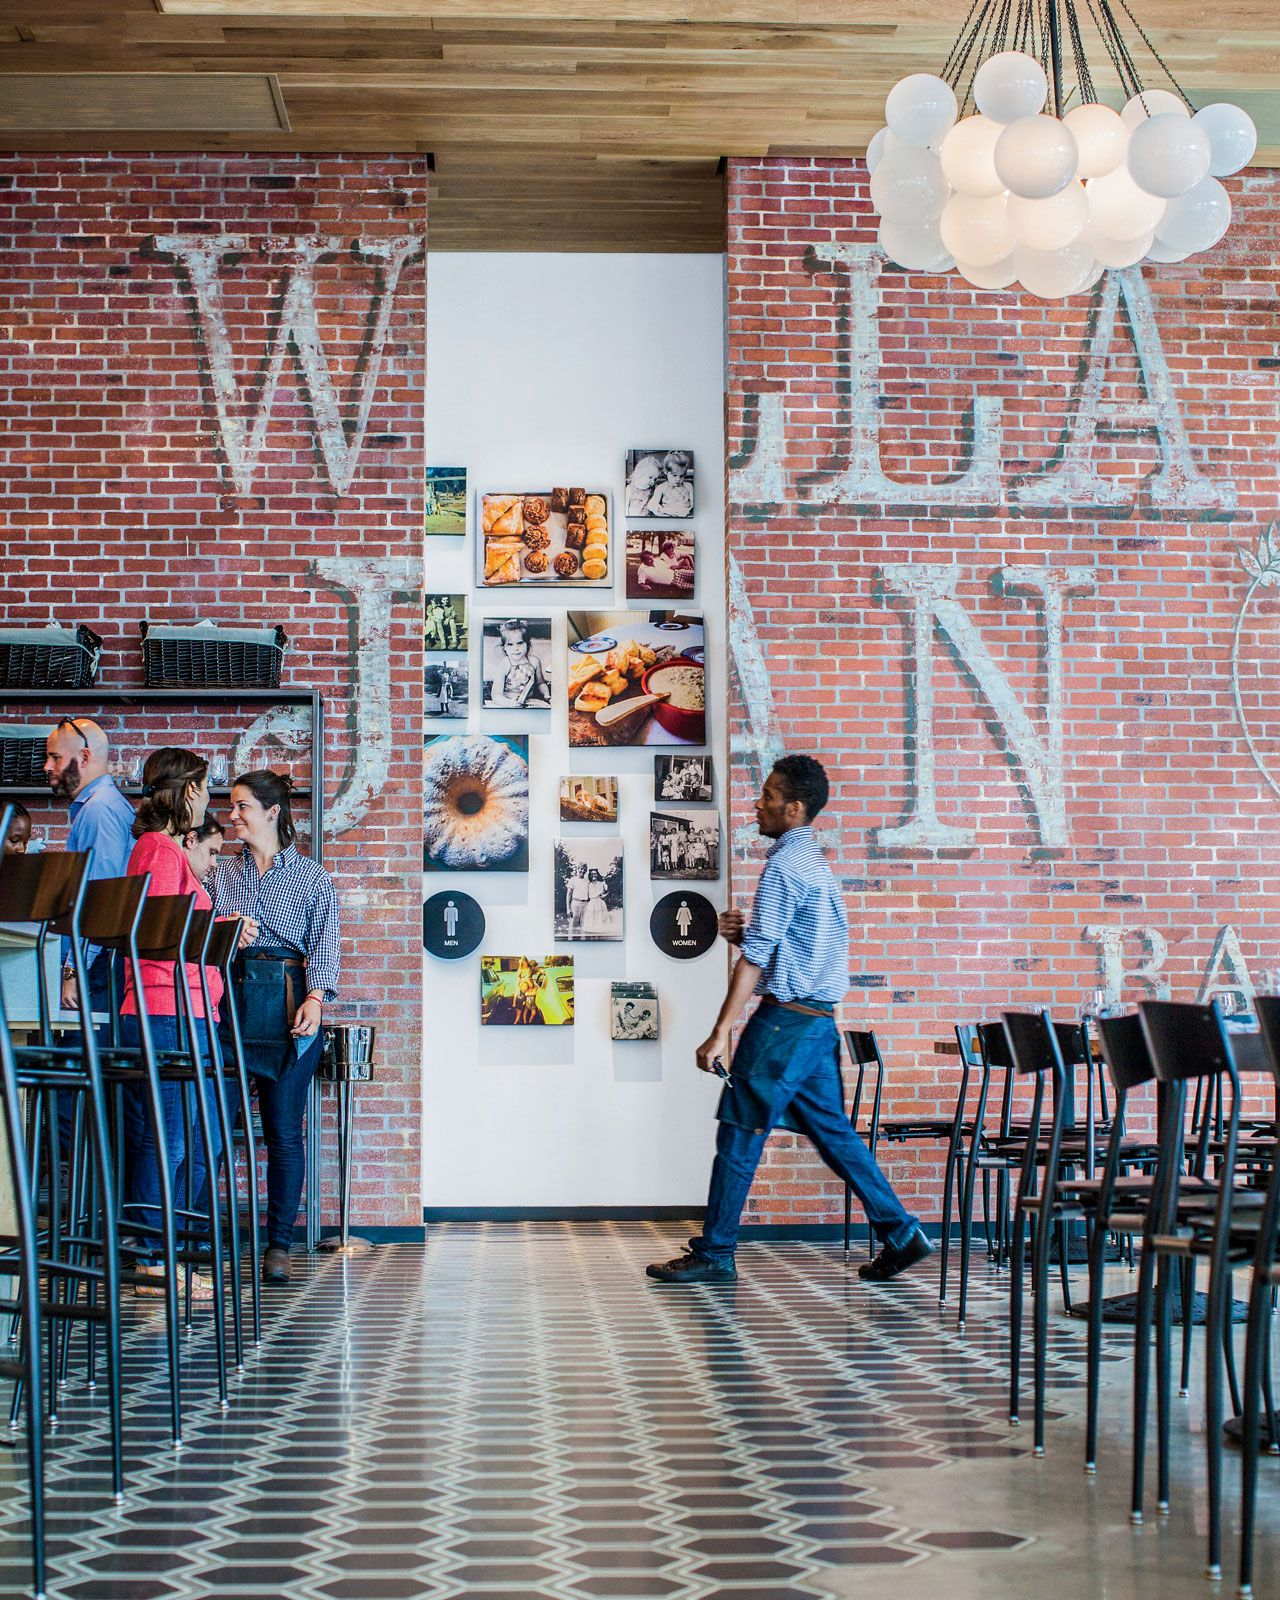 Where To Eat In New Orleans According To Chef Nina Compton New Orleans Compton Nola